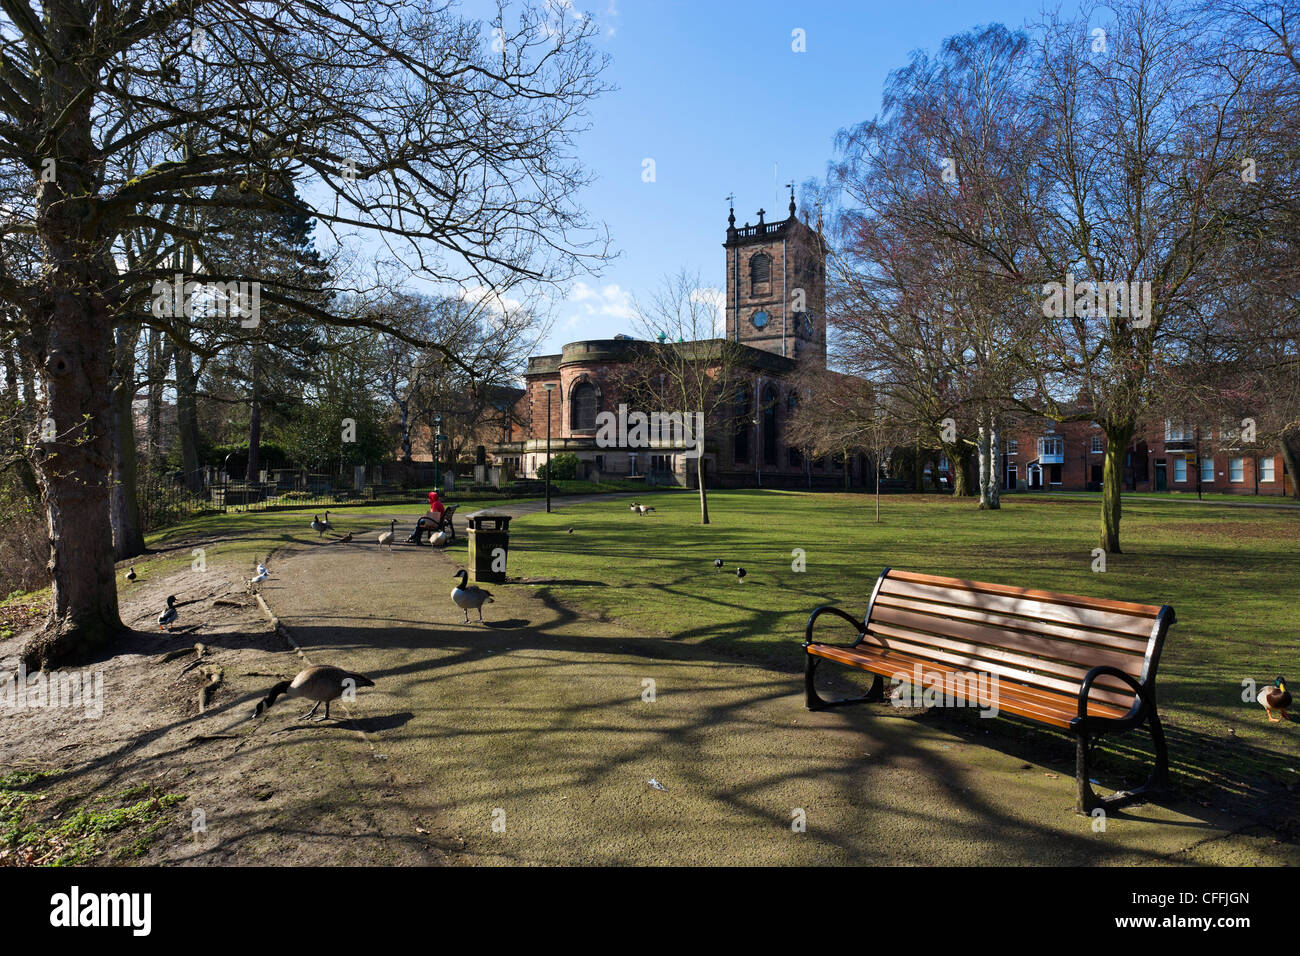 Park alongside the River Trent with St Modwen's Church behind, Burton-upon-Trent, Staffordshire, England, UK - Stock Image